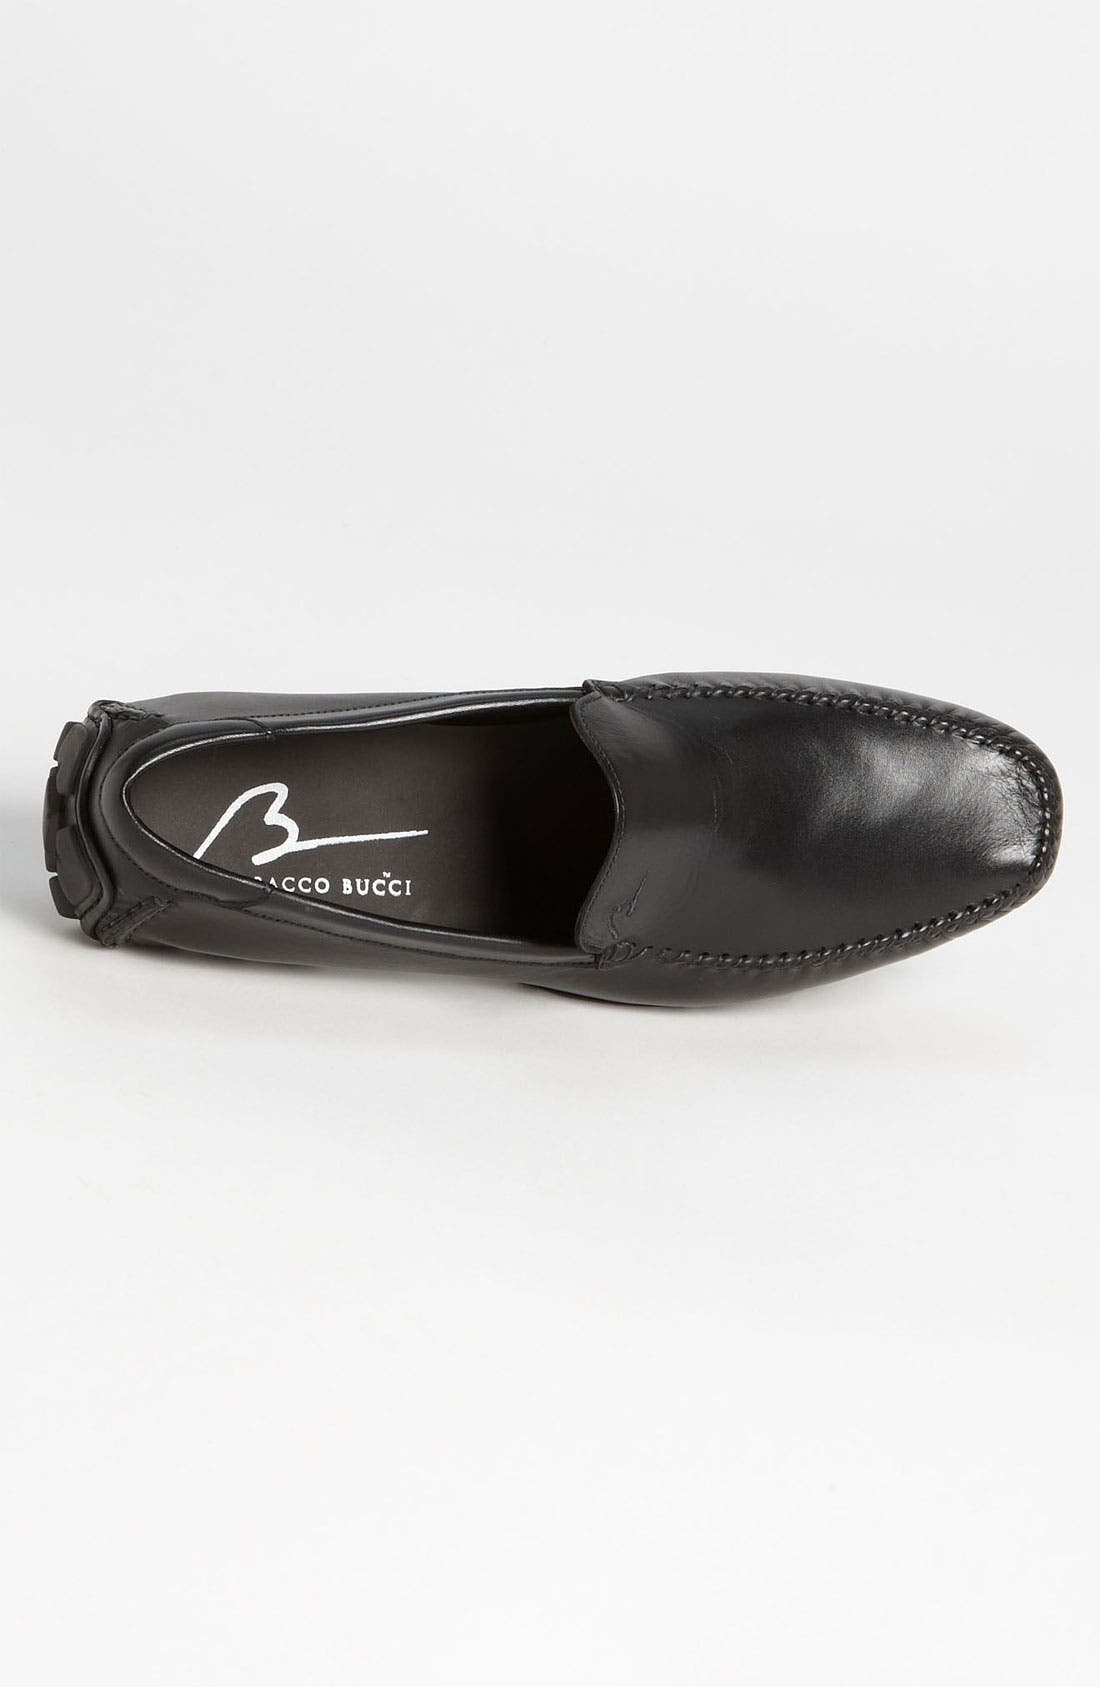 Alternate Image 3  - Bacco Bucci 'Enrico' Driving Shoe (Men)